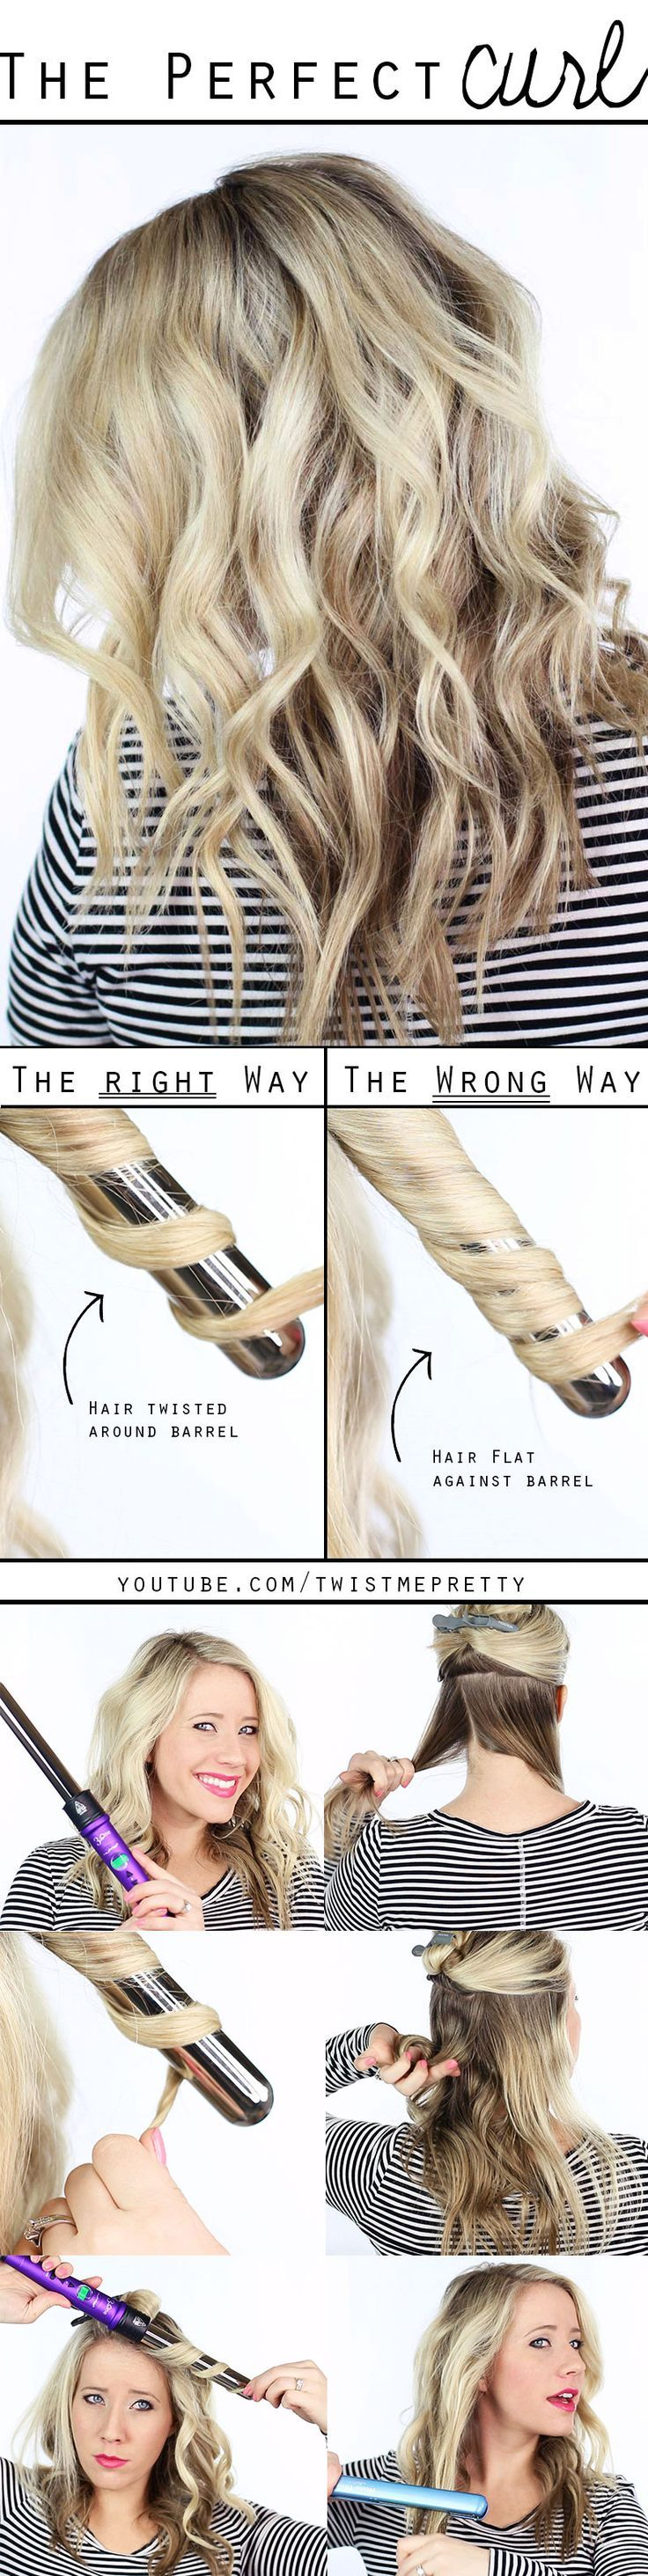 5 Hair Curling Wand Tutorials